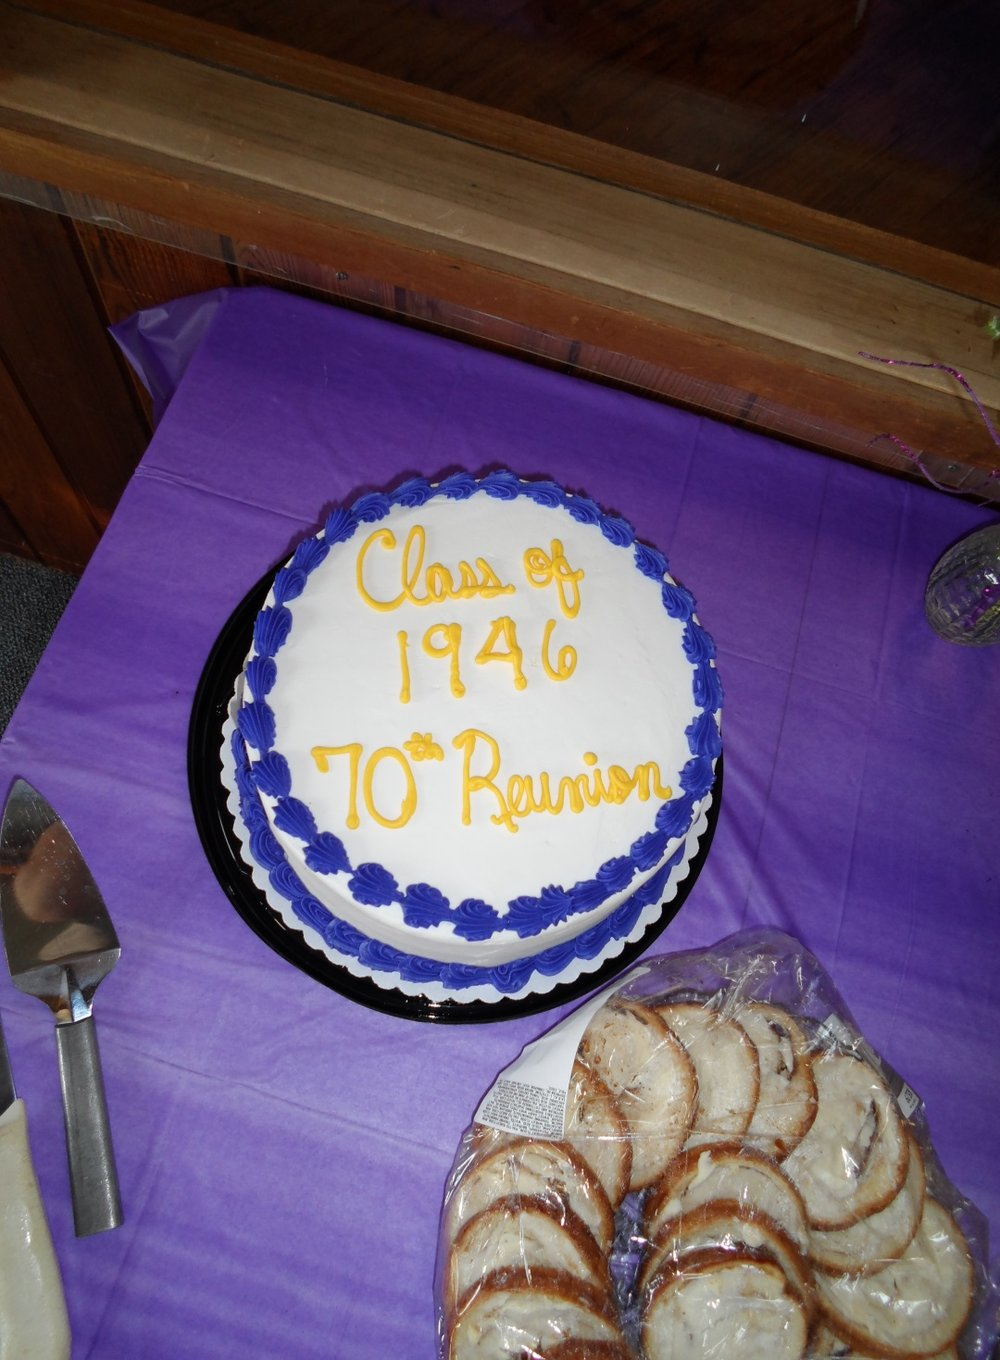 One of the cakes served for the class of 1946 70th reunion.